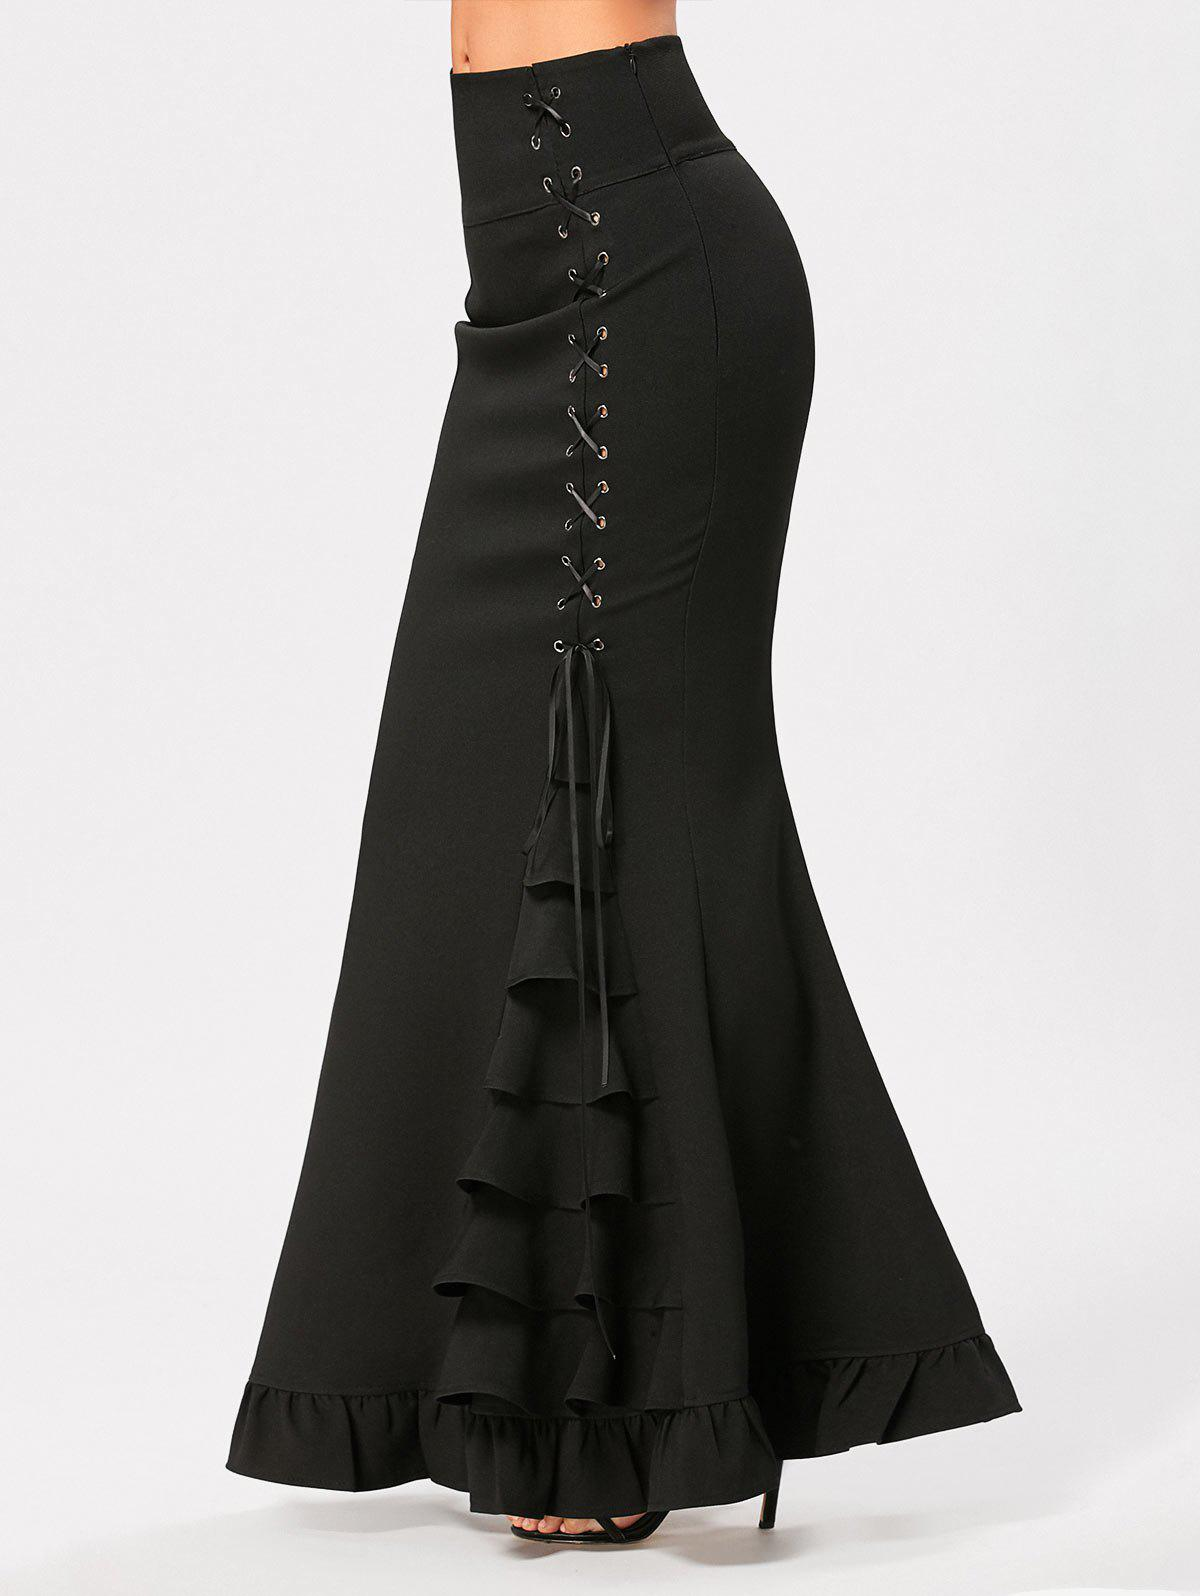 Ruffles Criss Cross Side Maxi Mermaid SkirtWOMEN<br><br>Size: 2XL; Color: BLACK; Material: Polyester; Length: Floor-Length; Silhouette: Trumpet/Mermaid; Pattern Type: Solid; Embellishment: Criss-Cross,Ruffles; Season: Fall,Spring; With Belt: No; Weight: 0.5800kg; Package Contents: 1 x Skirt;